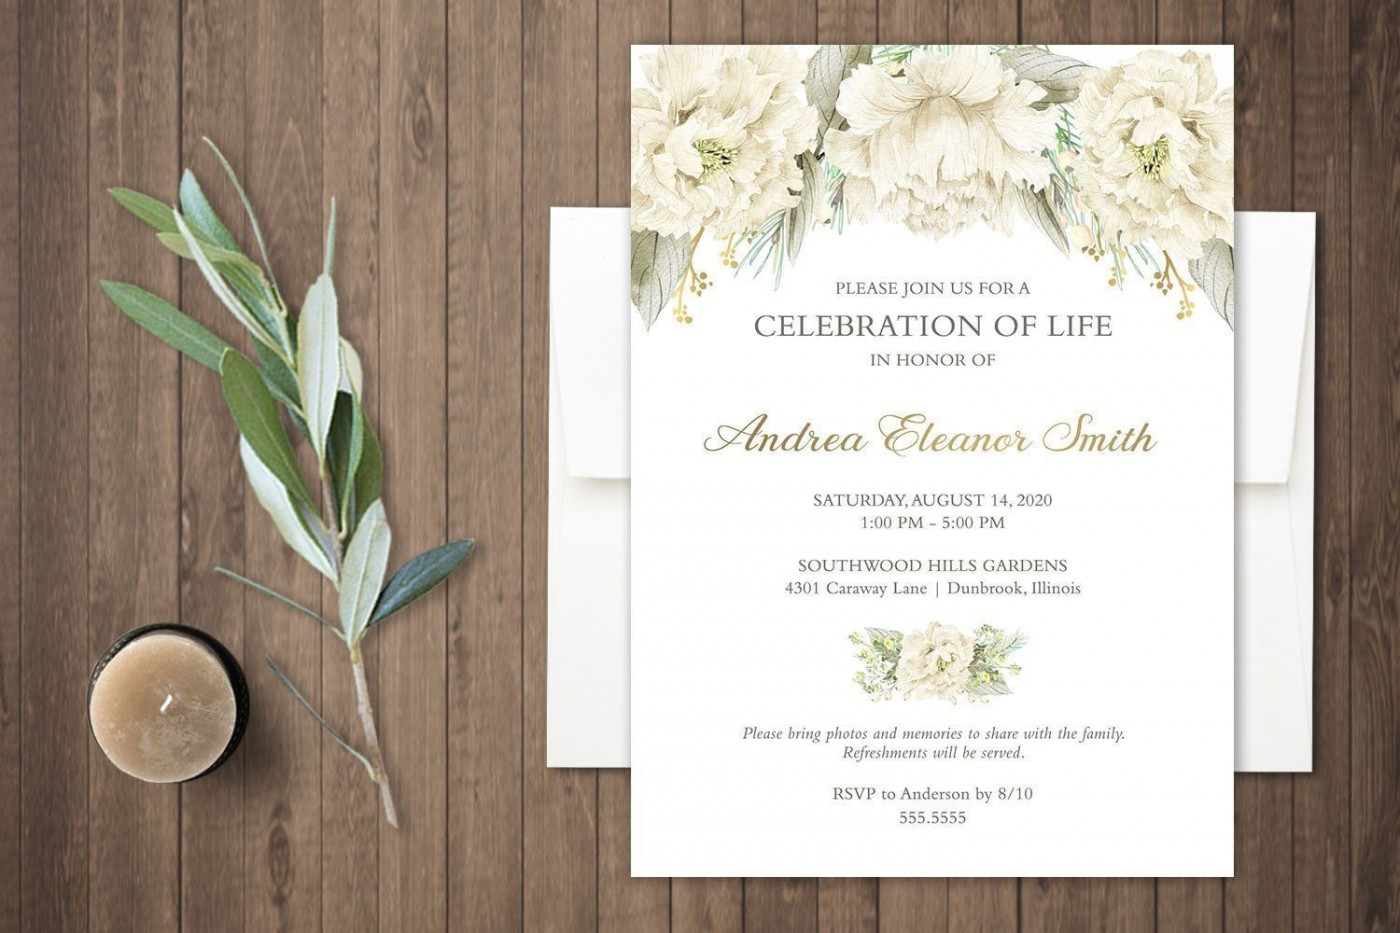 000 Fearsome Celebration Of Life Invitation Template Free High Resolution 1400